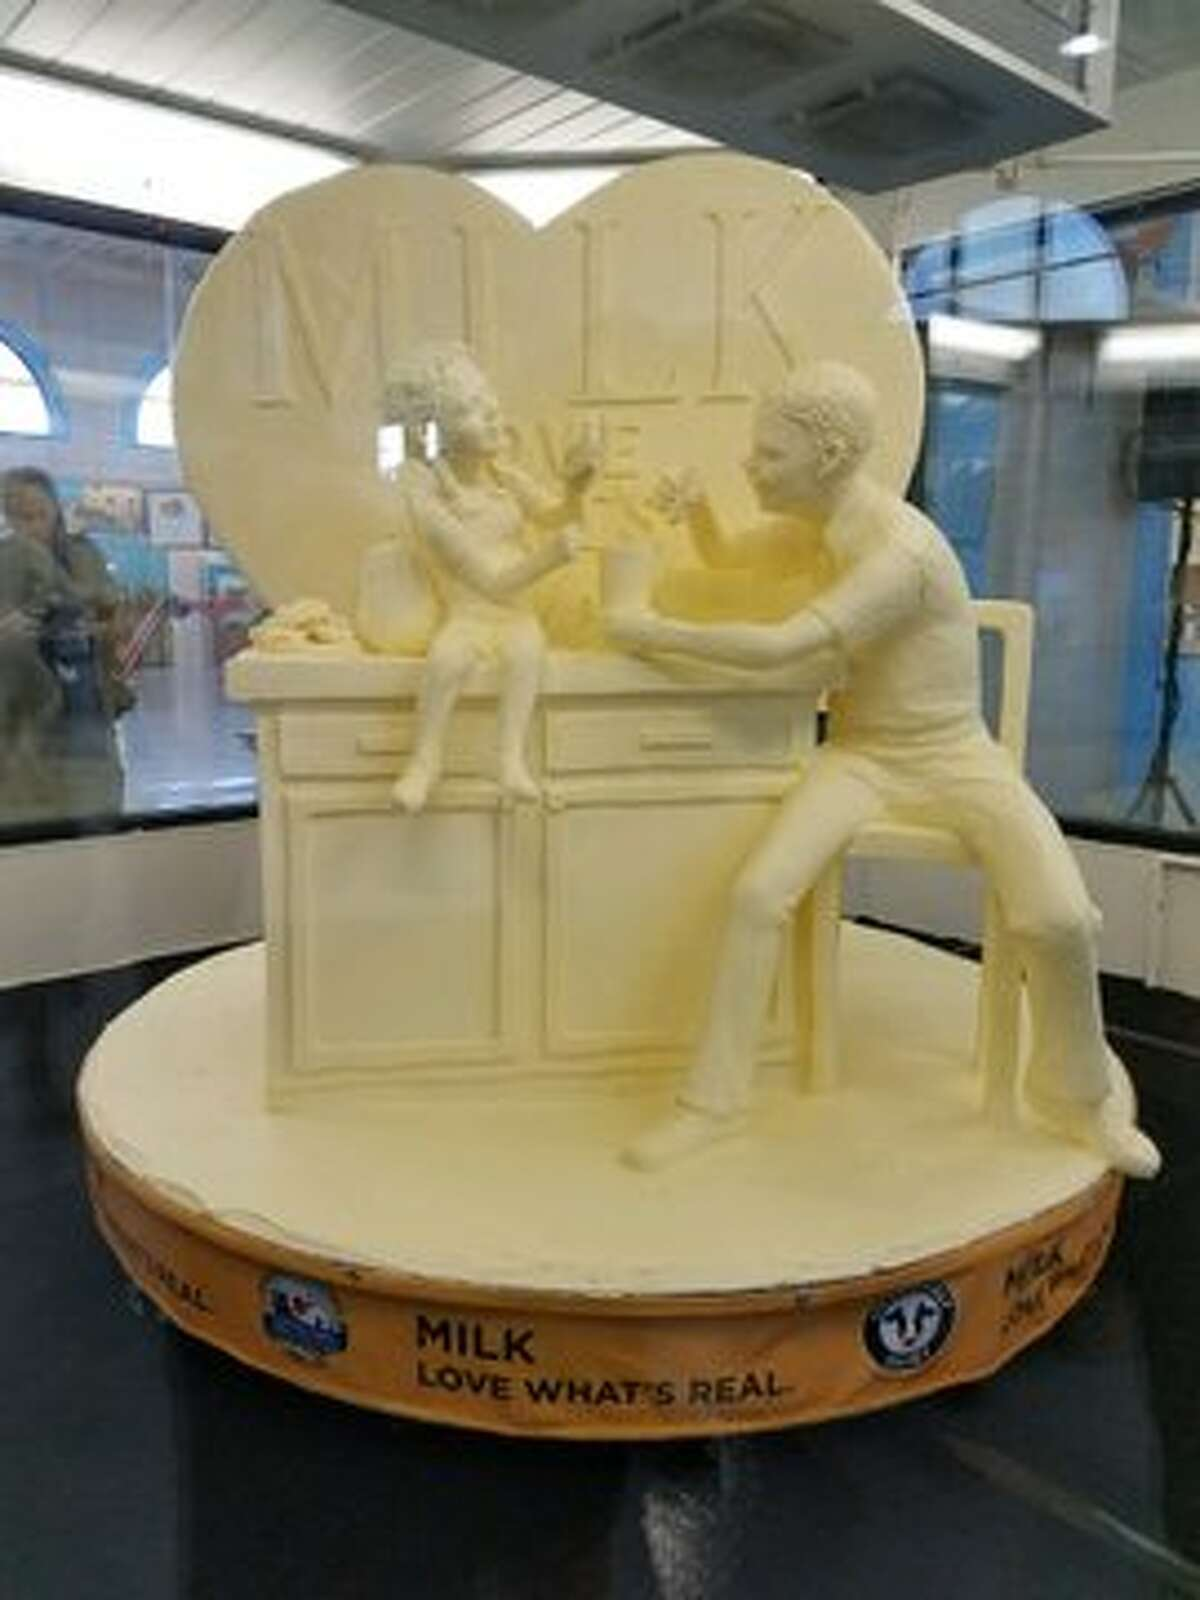 Milk. Love What's Real is the 2019 New York State Fair butter sculpture theme. It was unveiled on Aug. 20 at the fairgrounds in Syracuse.